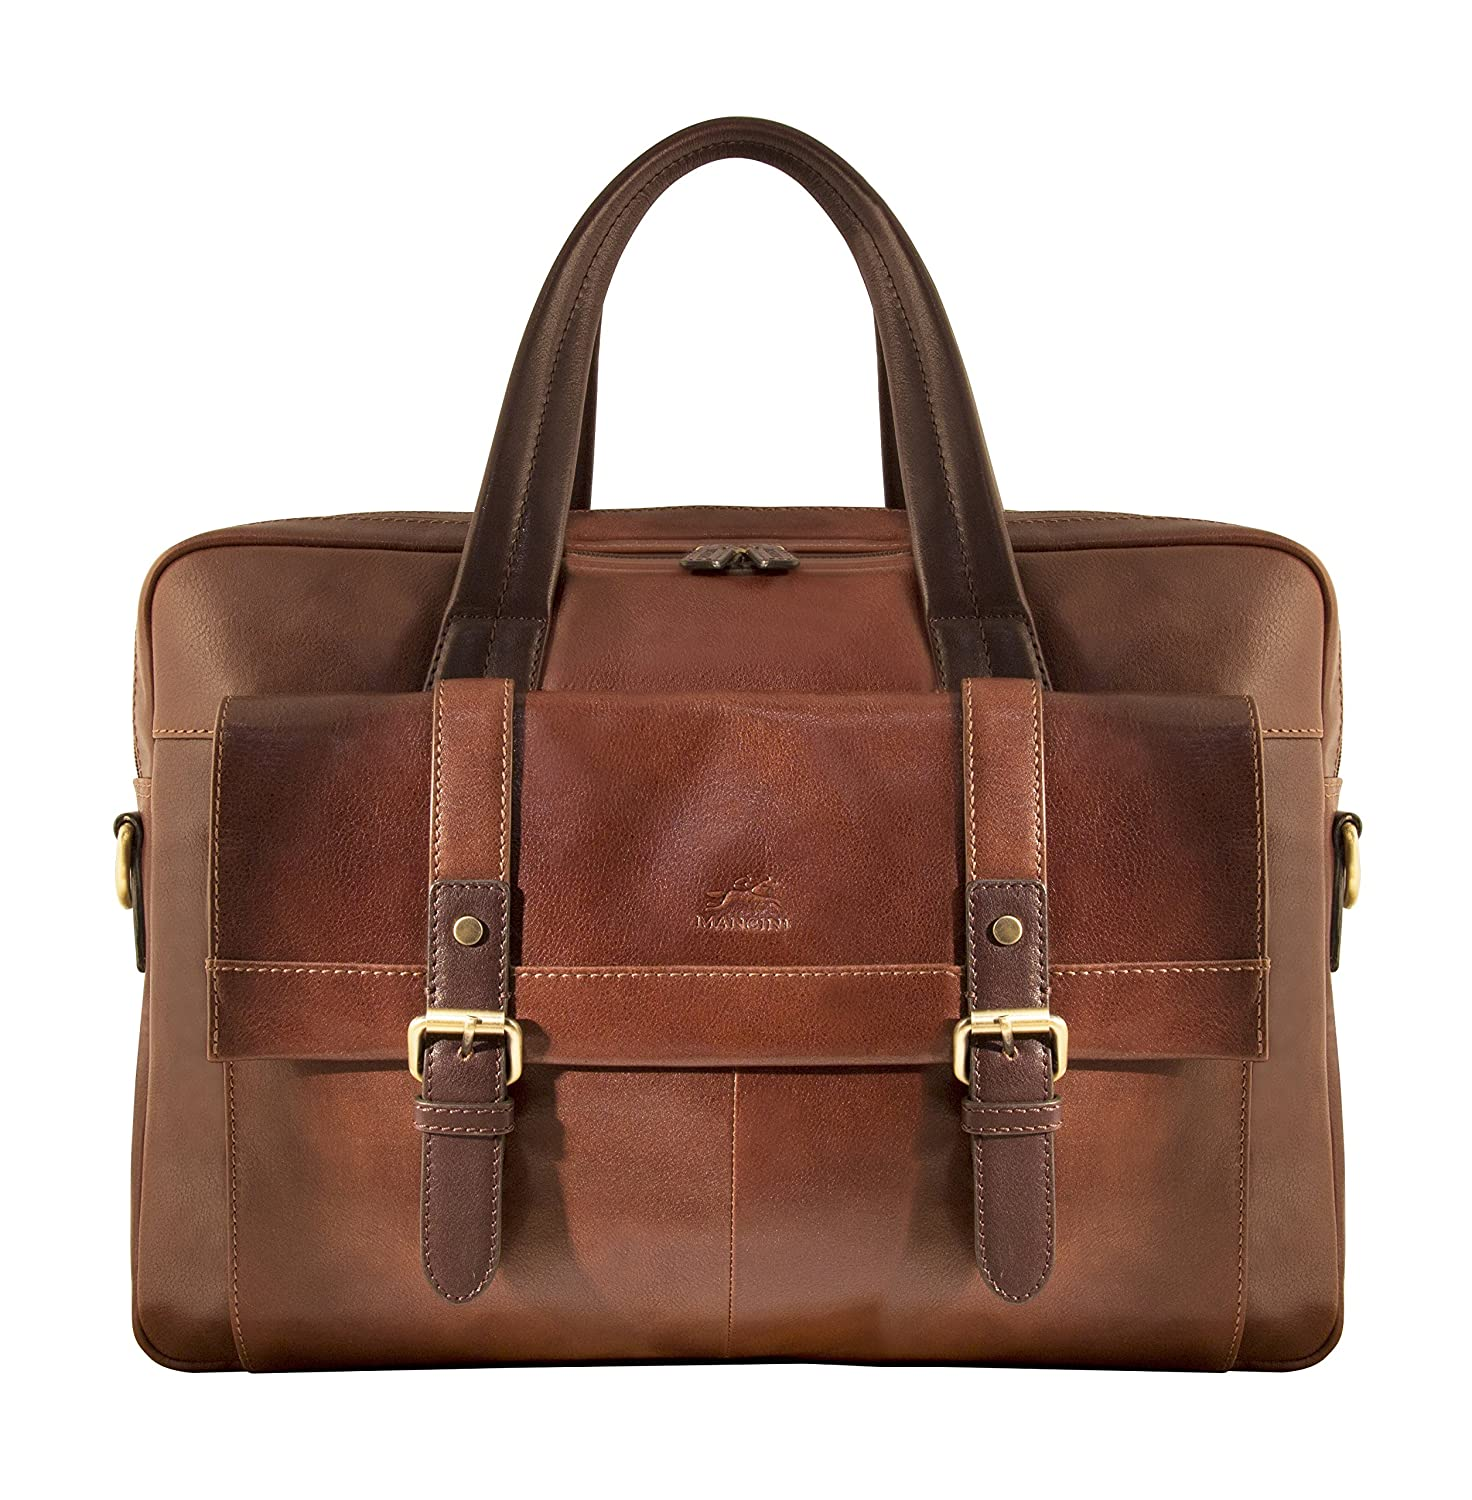 Mancini Leather Goods RFID Secure Double Compartment Laptop Briefcase